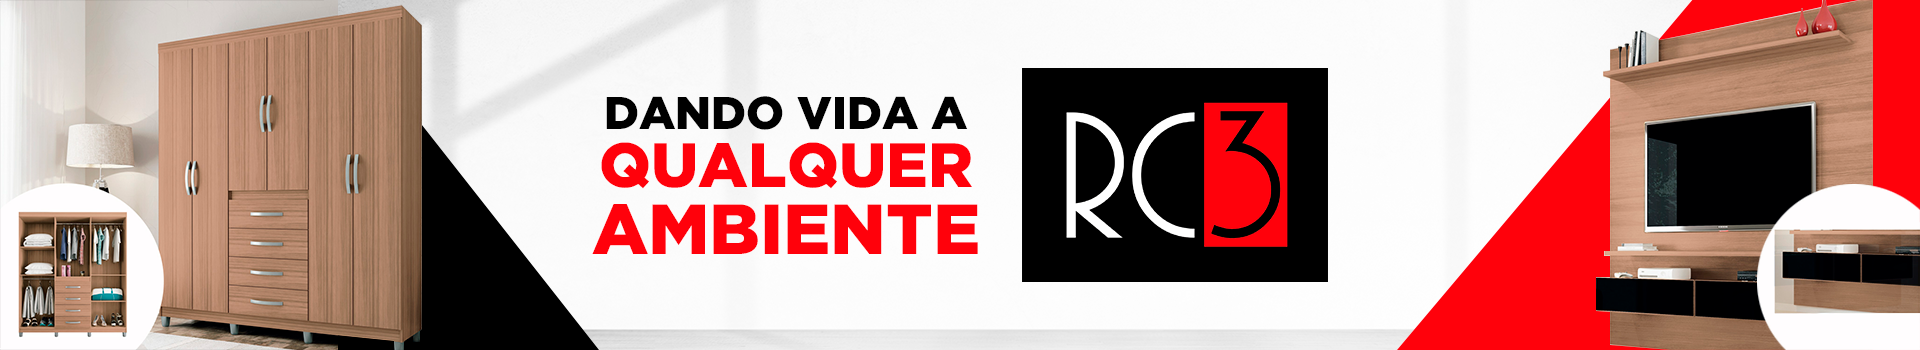 BANNER-SITE-RC3-1